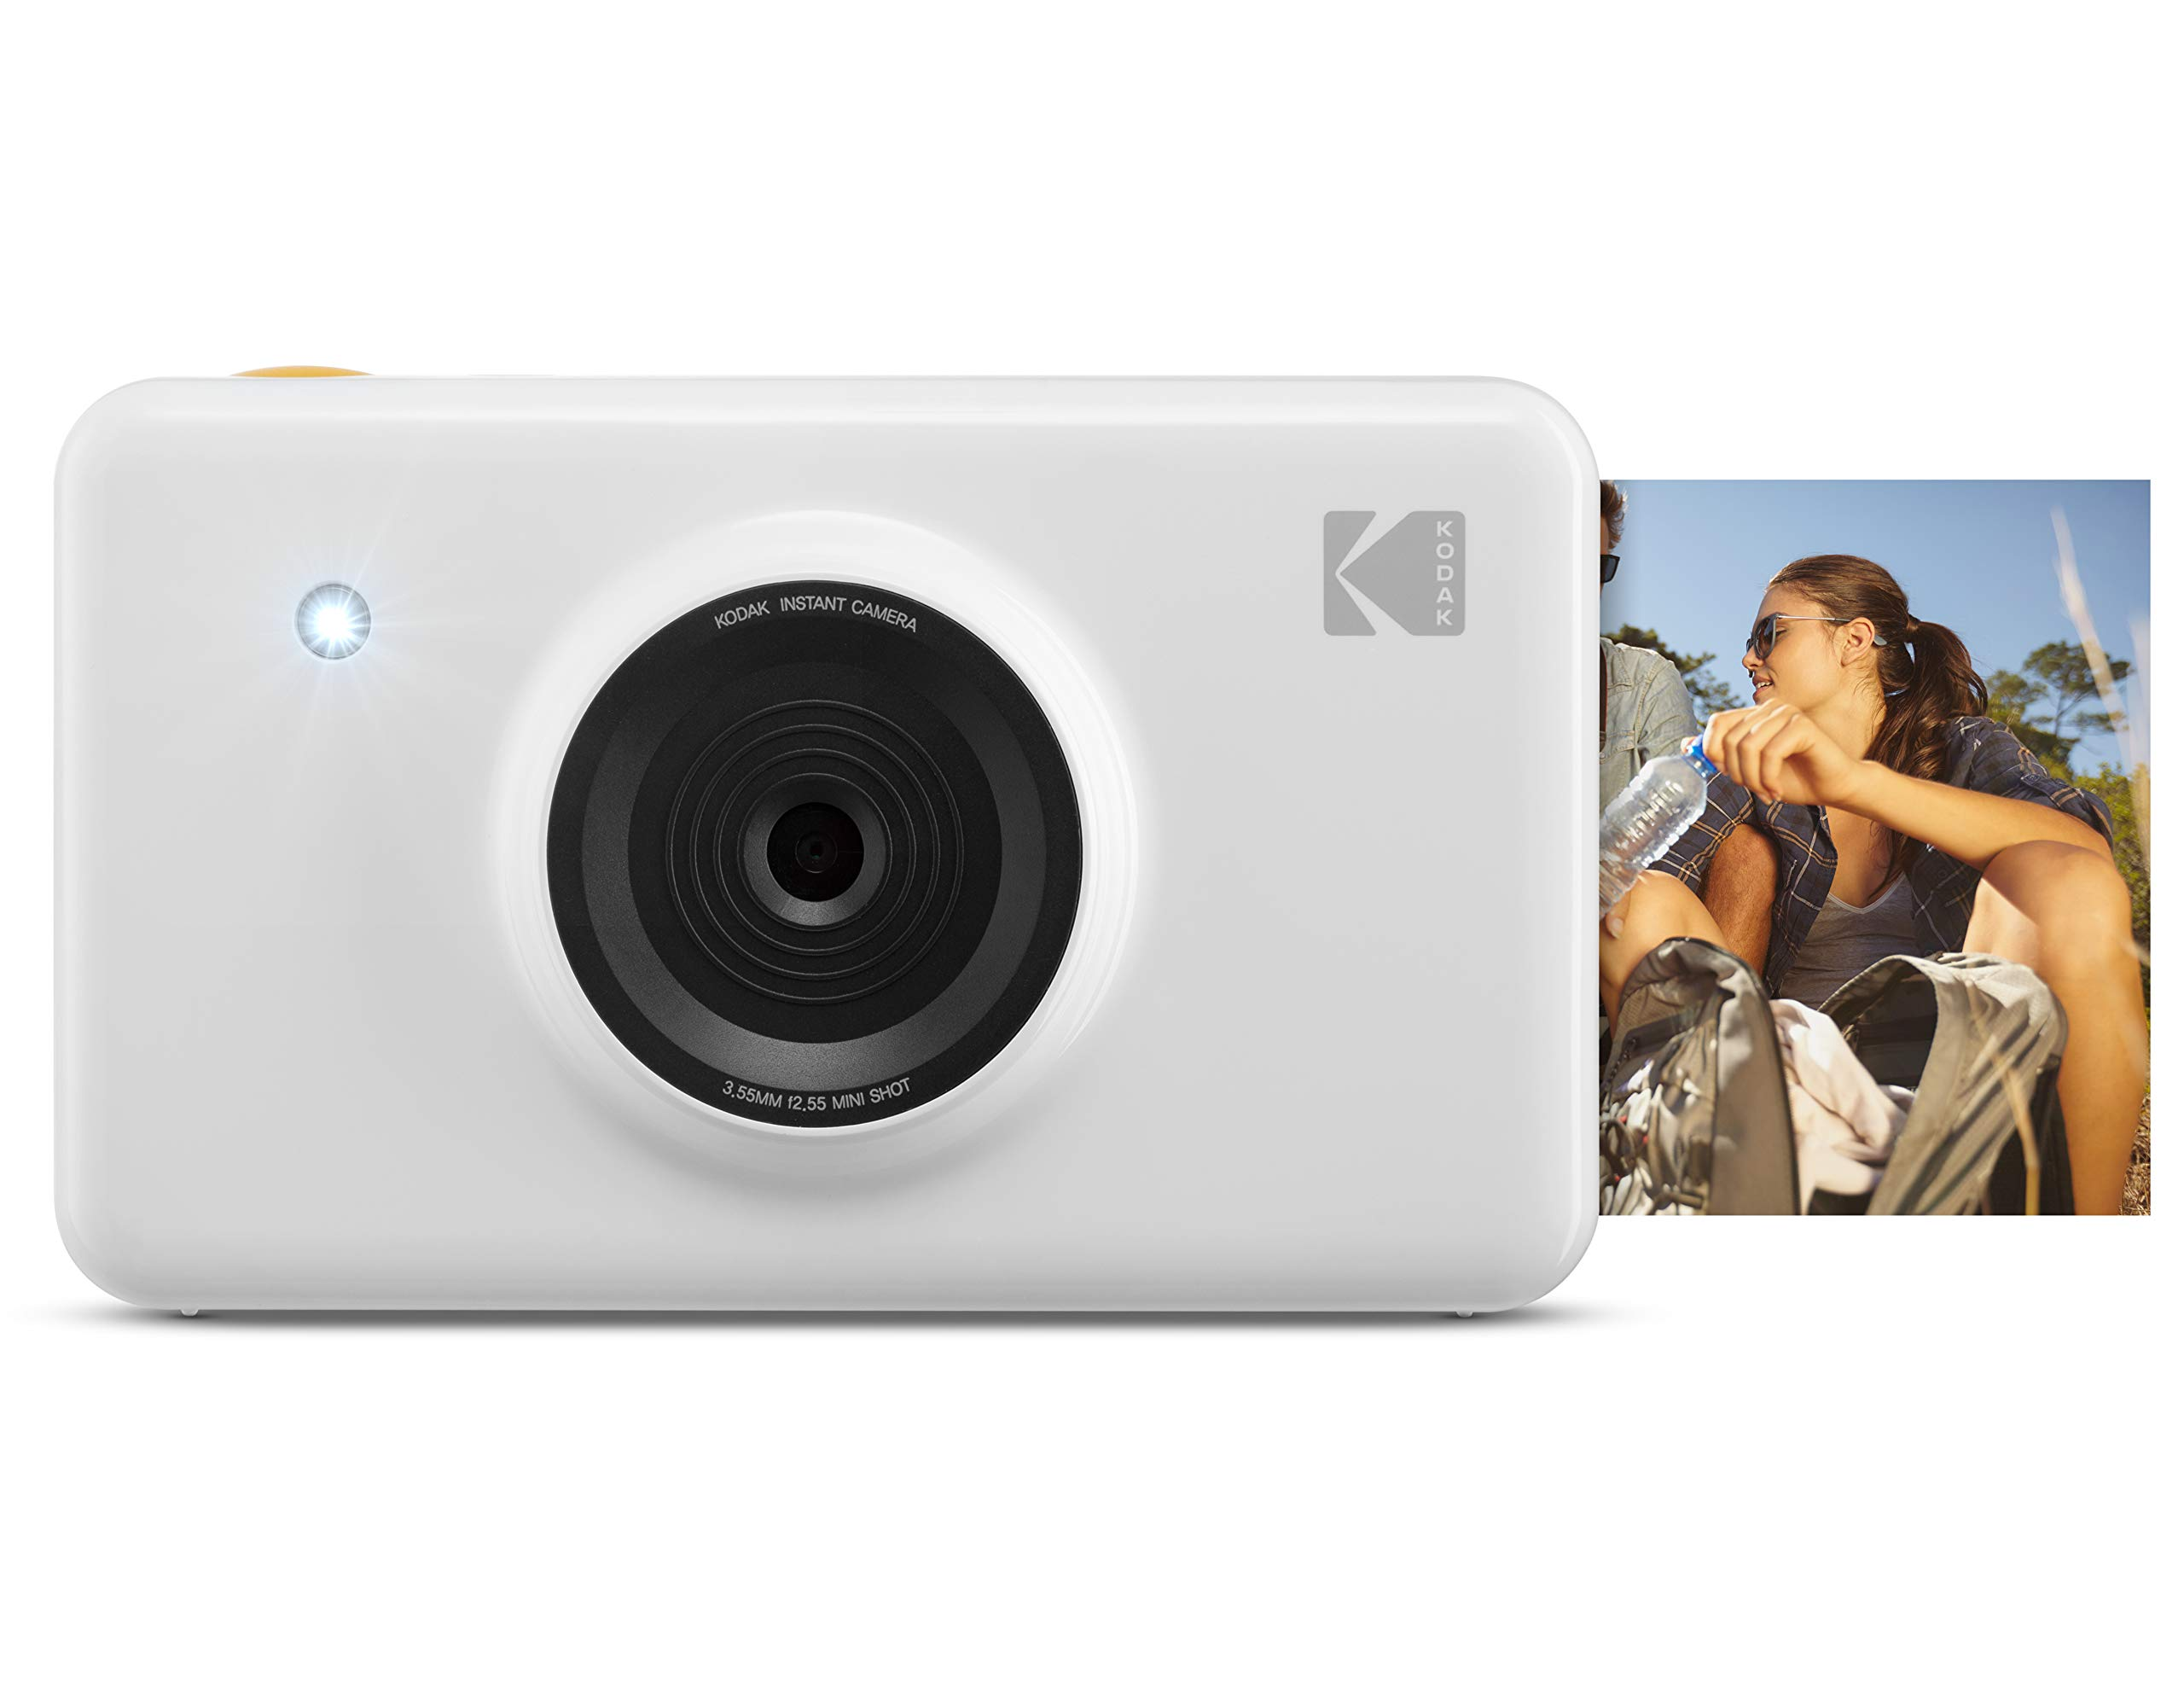 KODAK Mini Shot Wireless Instant Digital Camera & Social Media Portable Photo Printer, LCD Display, Premium Quality Full Color Prints, Compatible w/iOS & Android (White) by KODAK